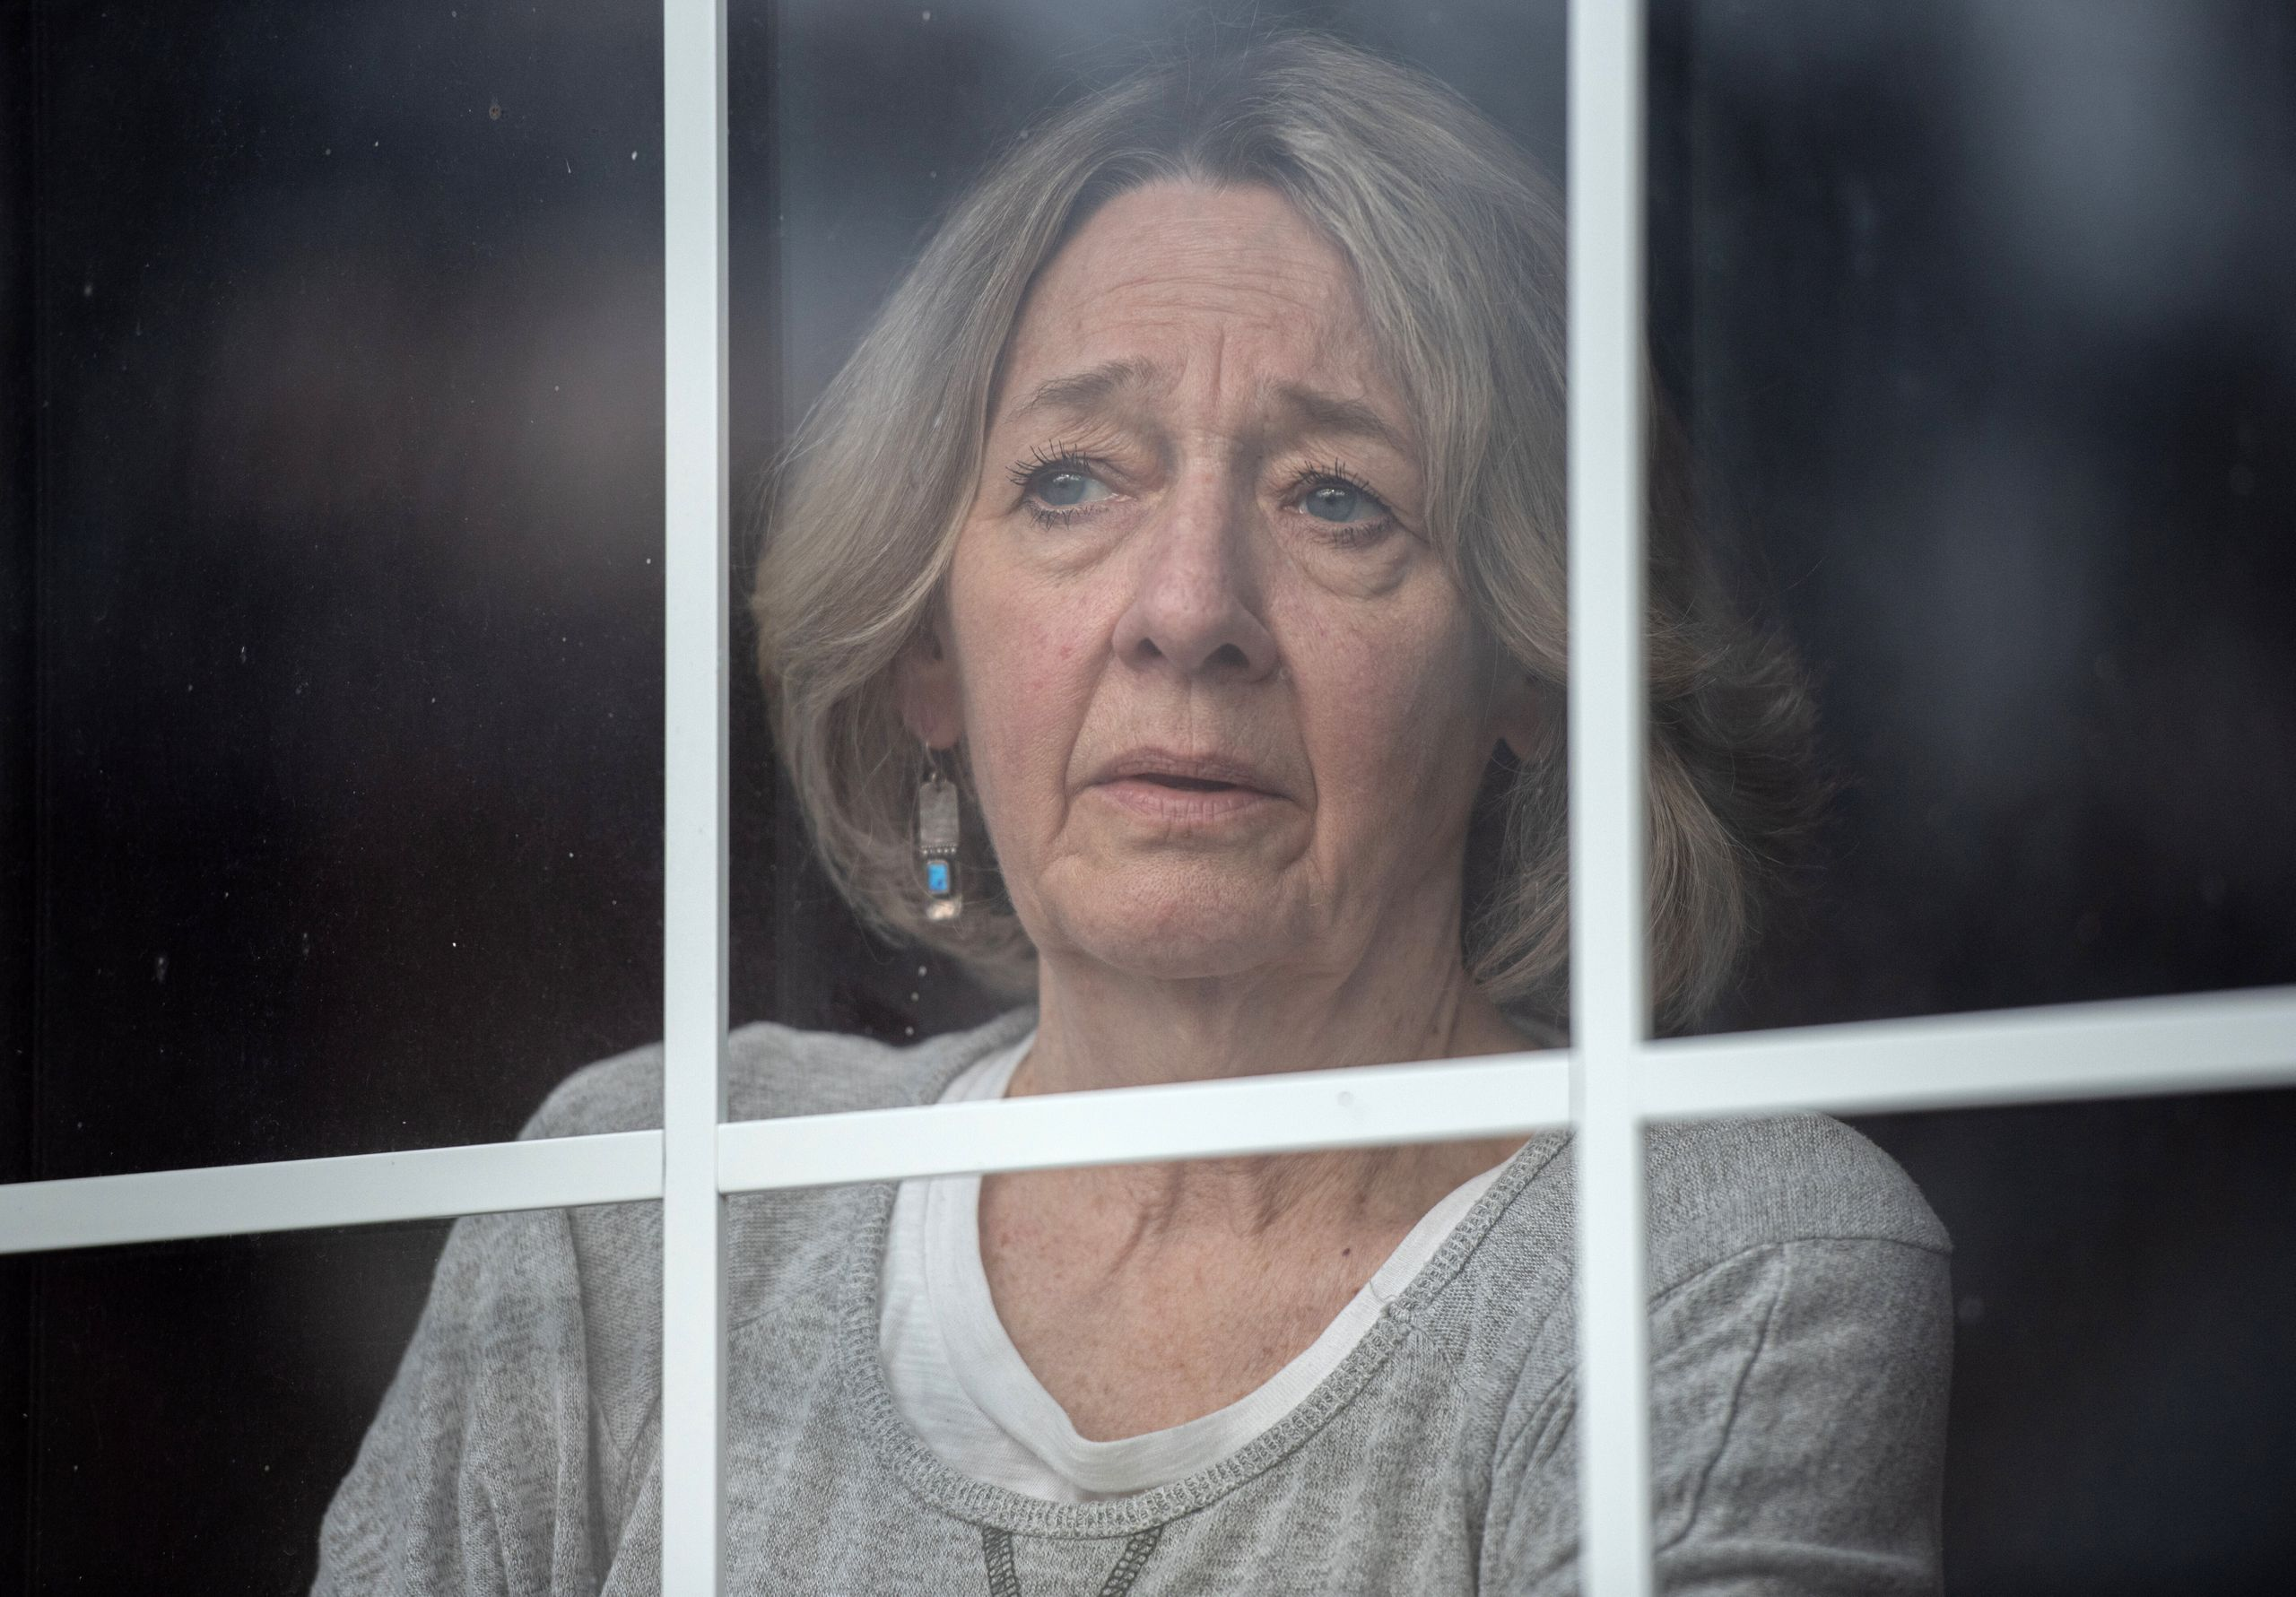 Linda Beaupre gazes out a window of her home on Wednesday. She lost her husband of 35 years to COVID-19.